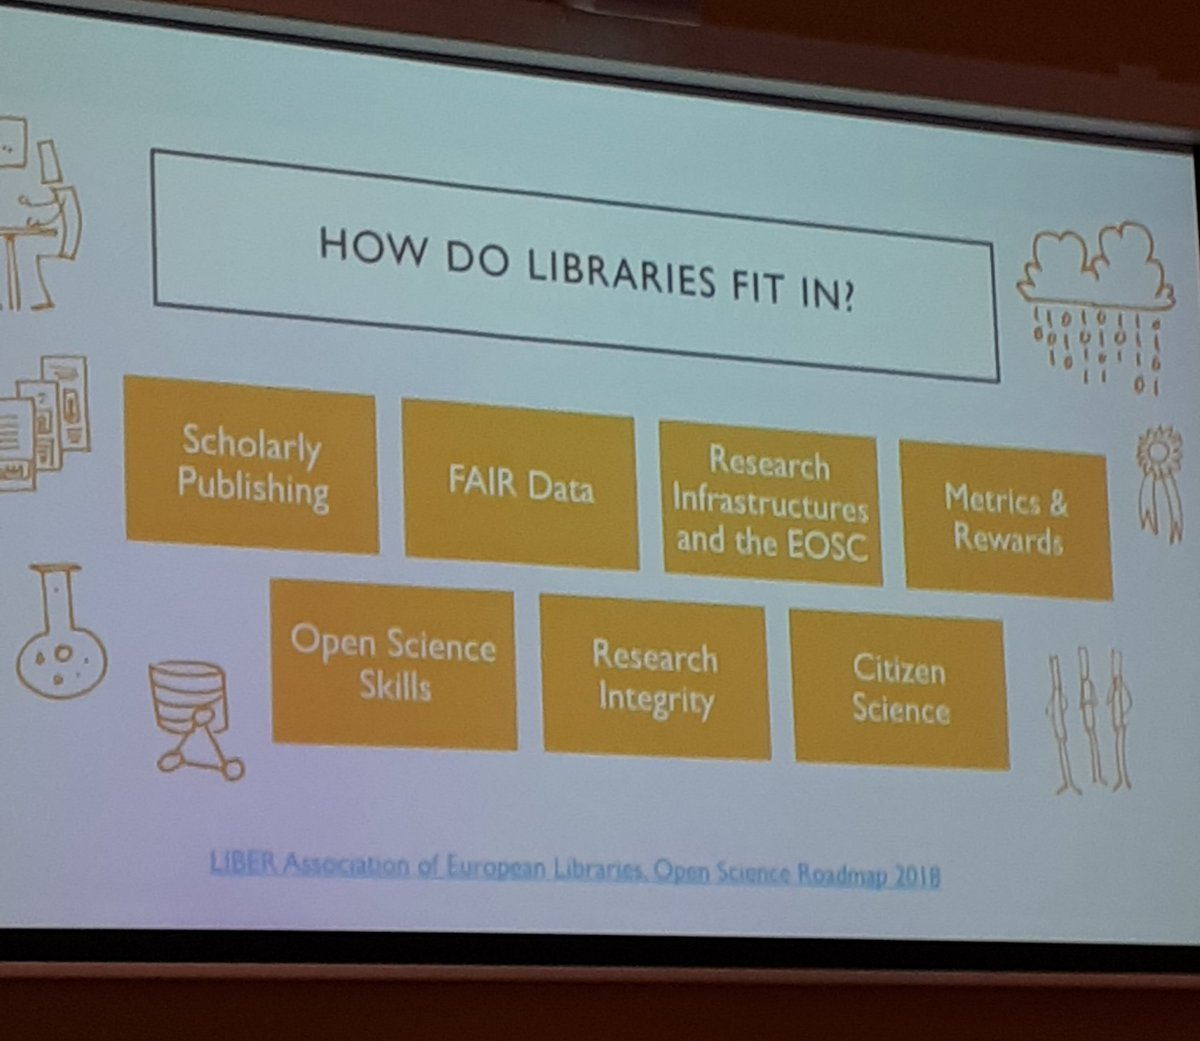 test Twitter Media - How @SCSLibrary and all libraries can help #diasdiscovers in #OpenScience #openscholarship @conultd https://t.co/2bFlr5fWyW